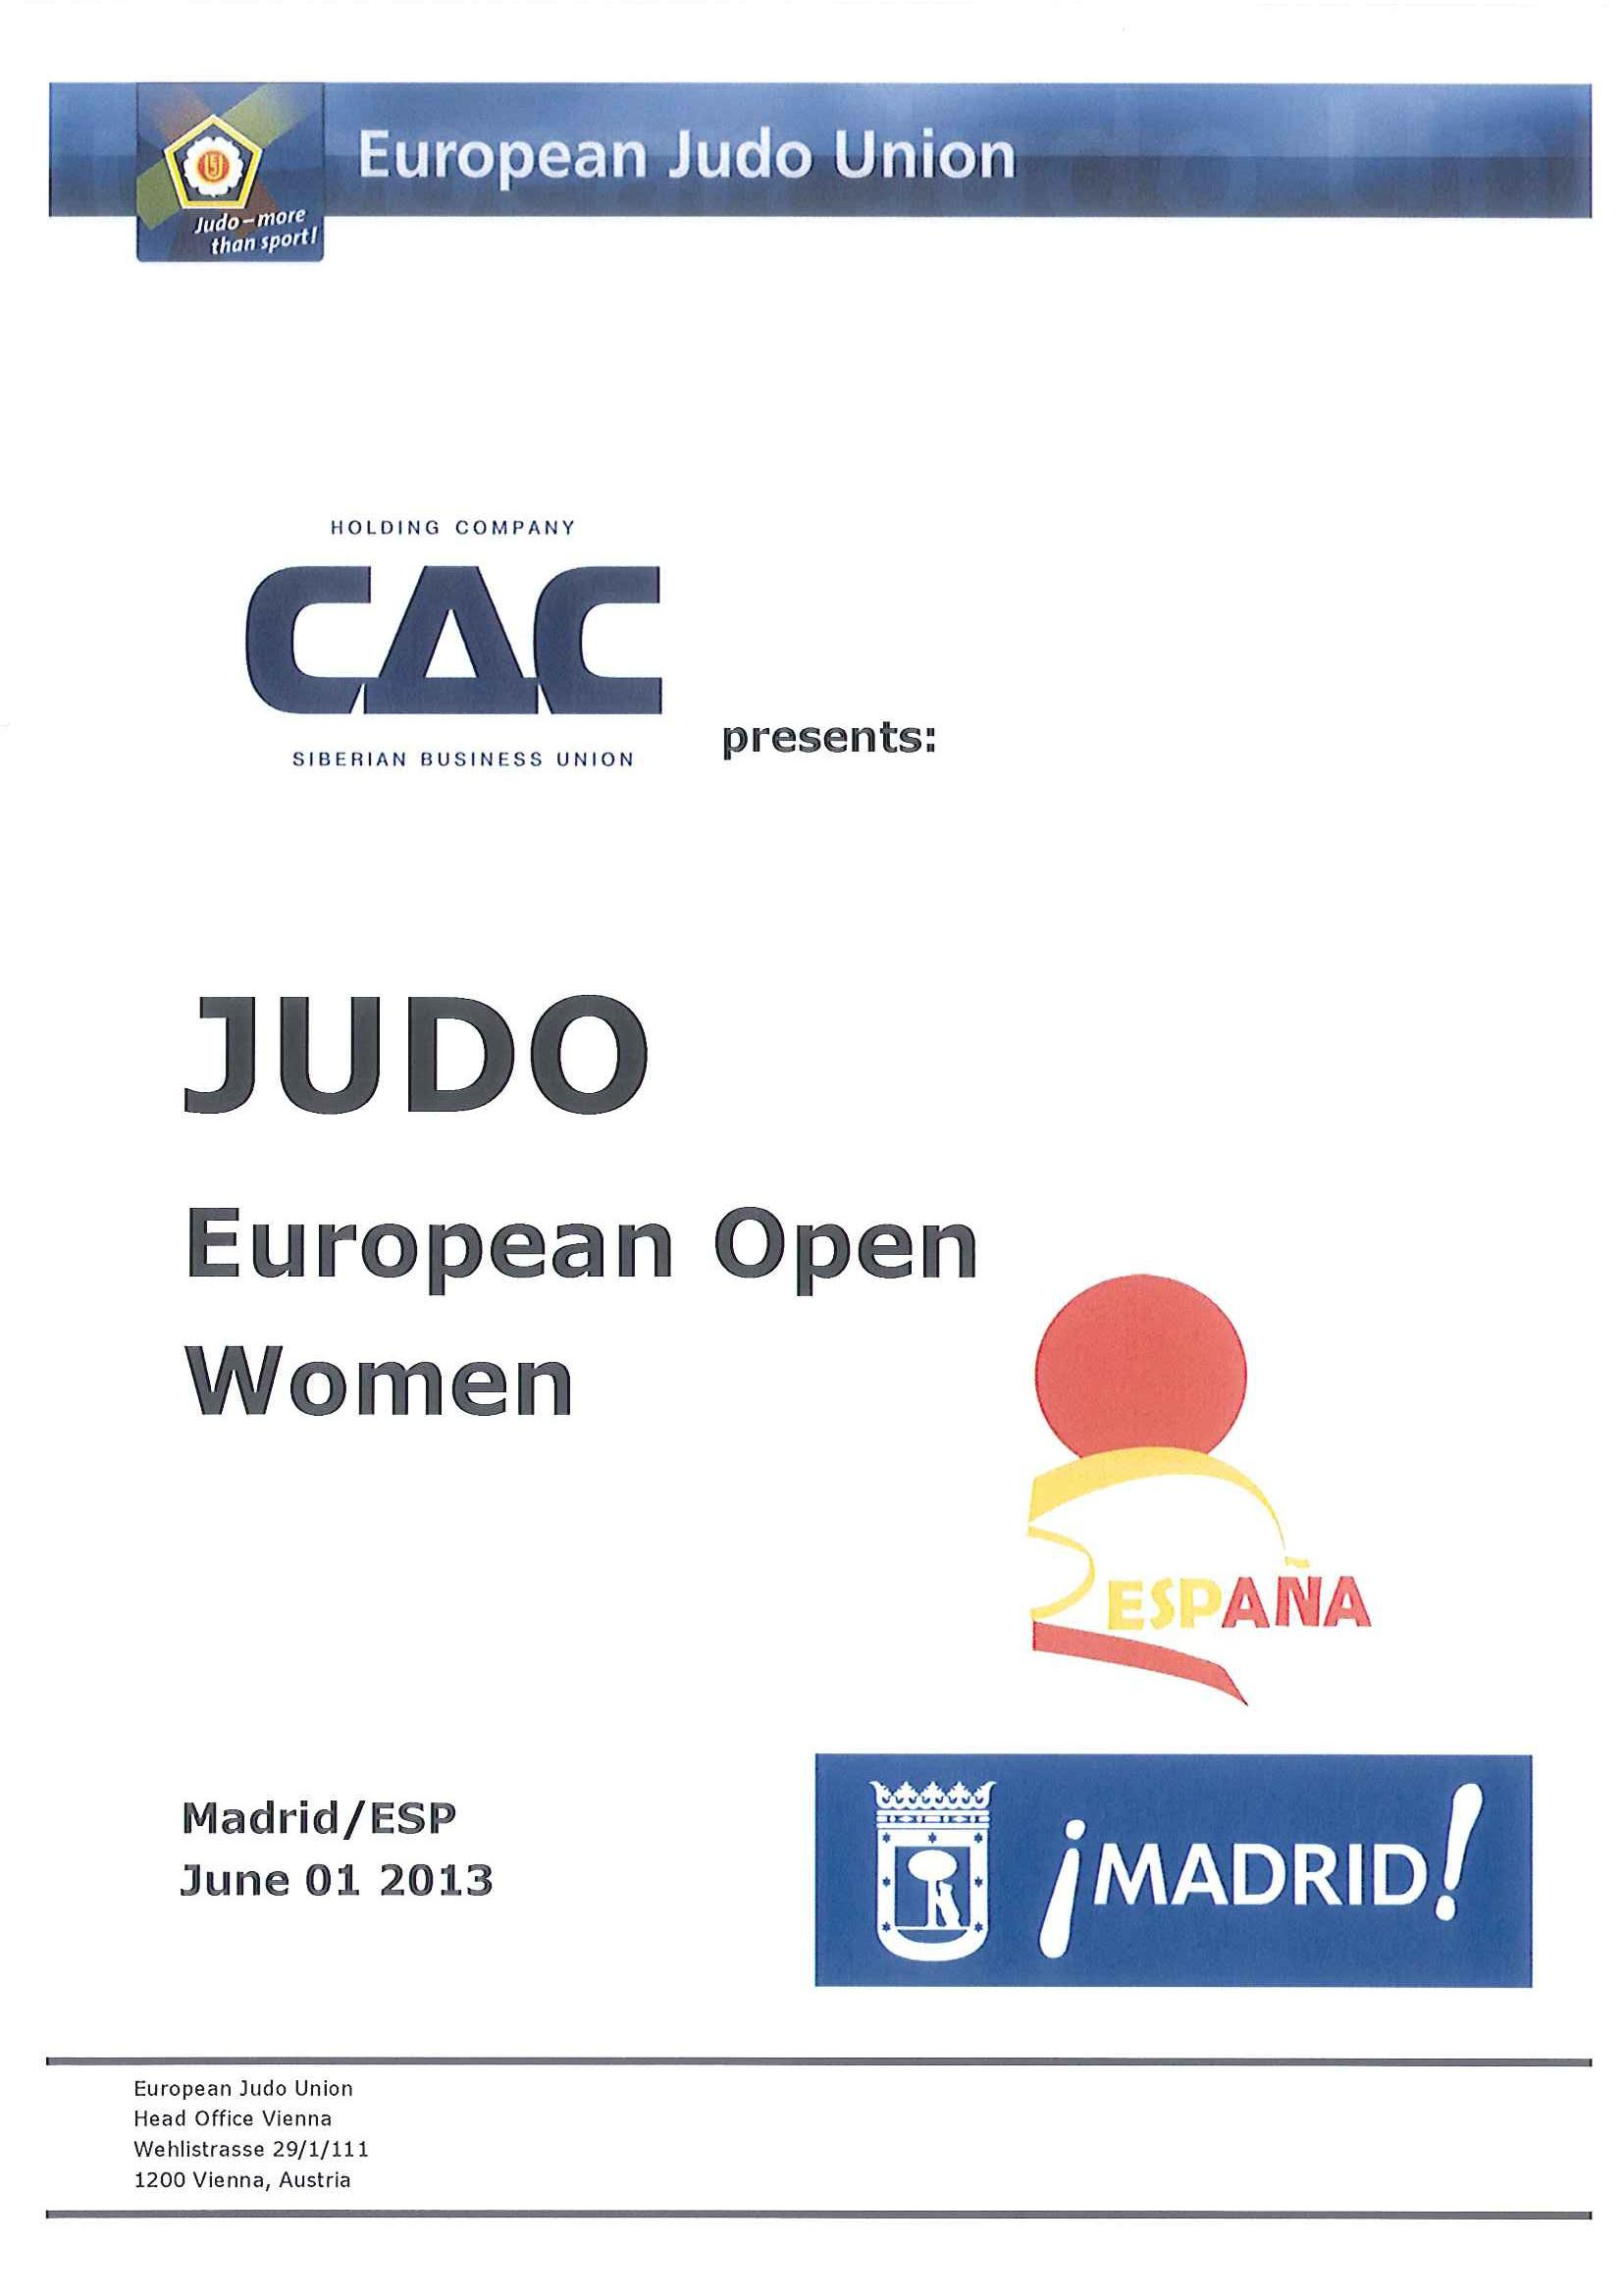 EUOPEAN OPEN WOMEN MADRID 2013